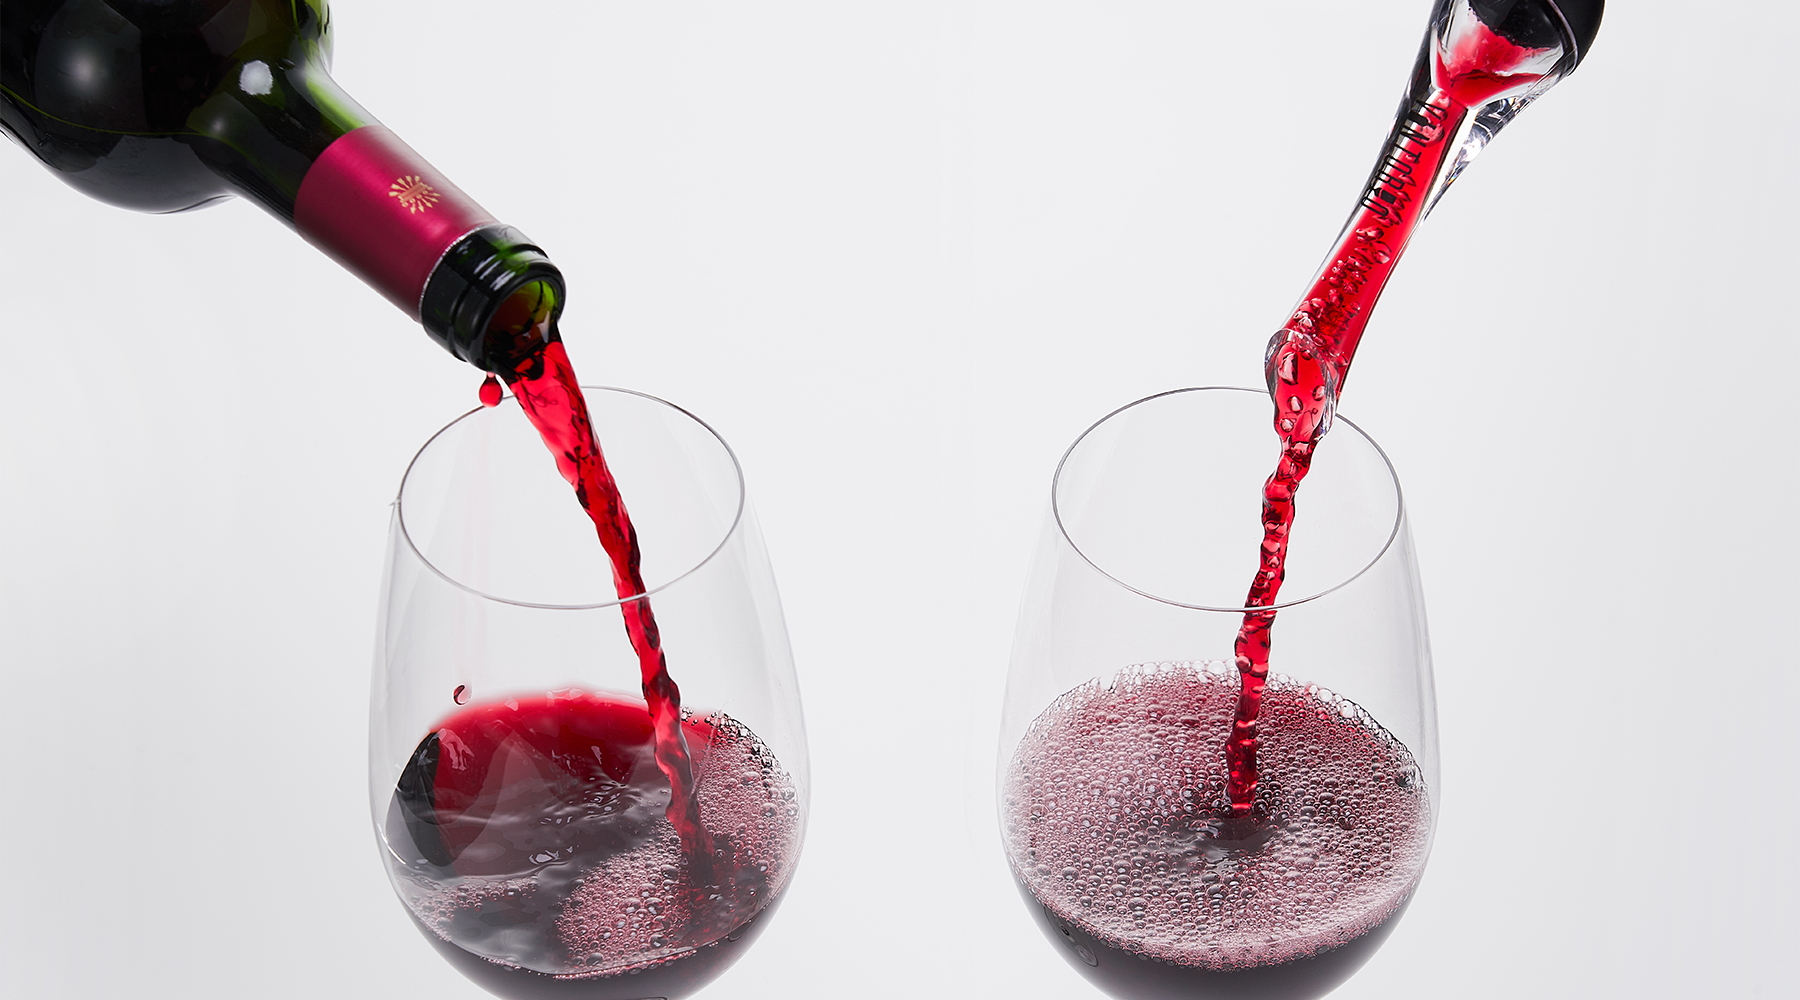 Vintorio Wine Aerator Pourer Comparison